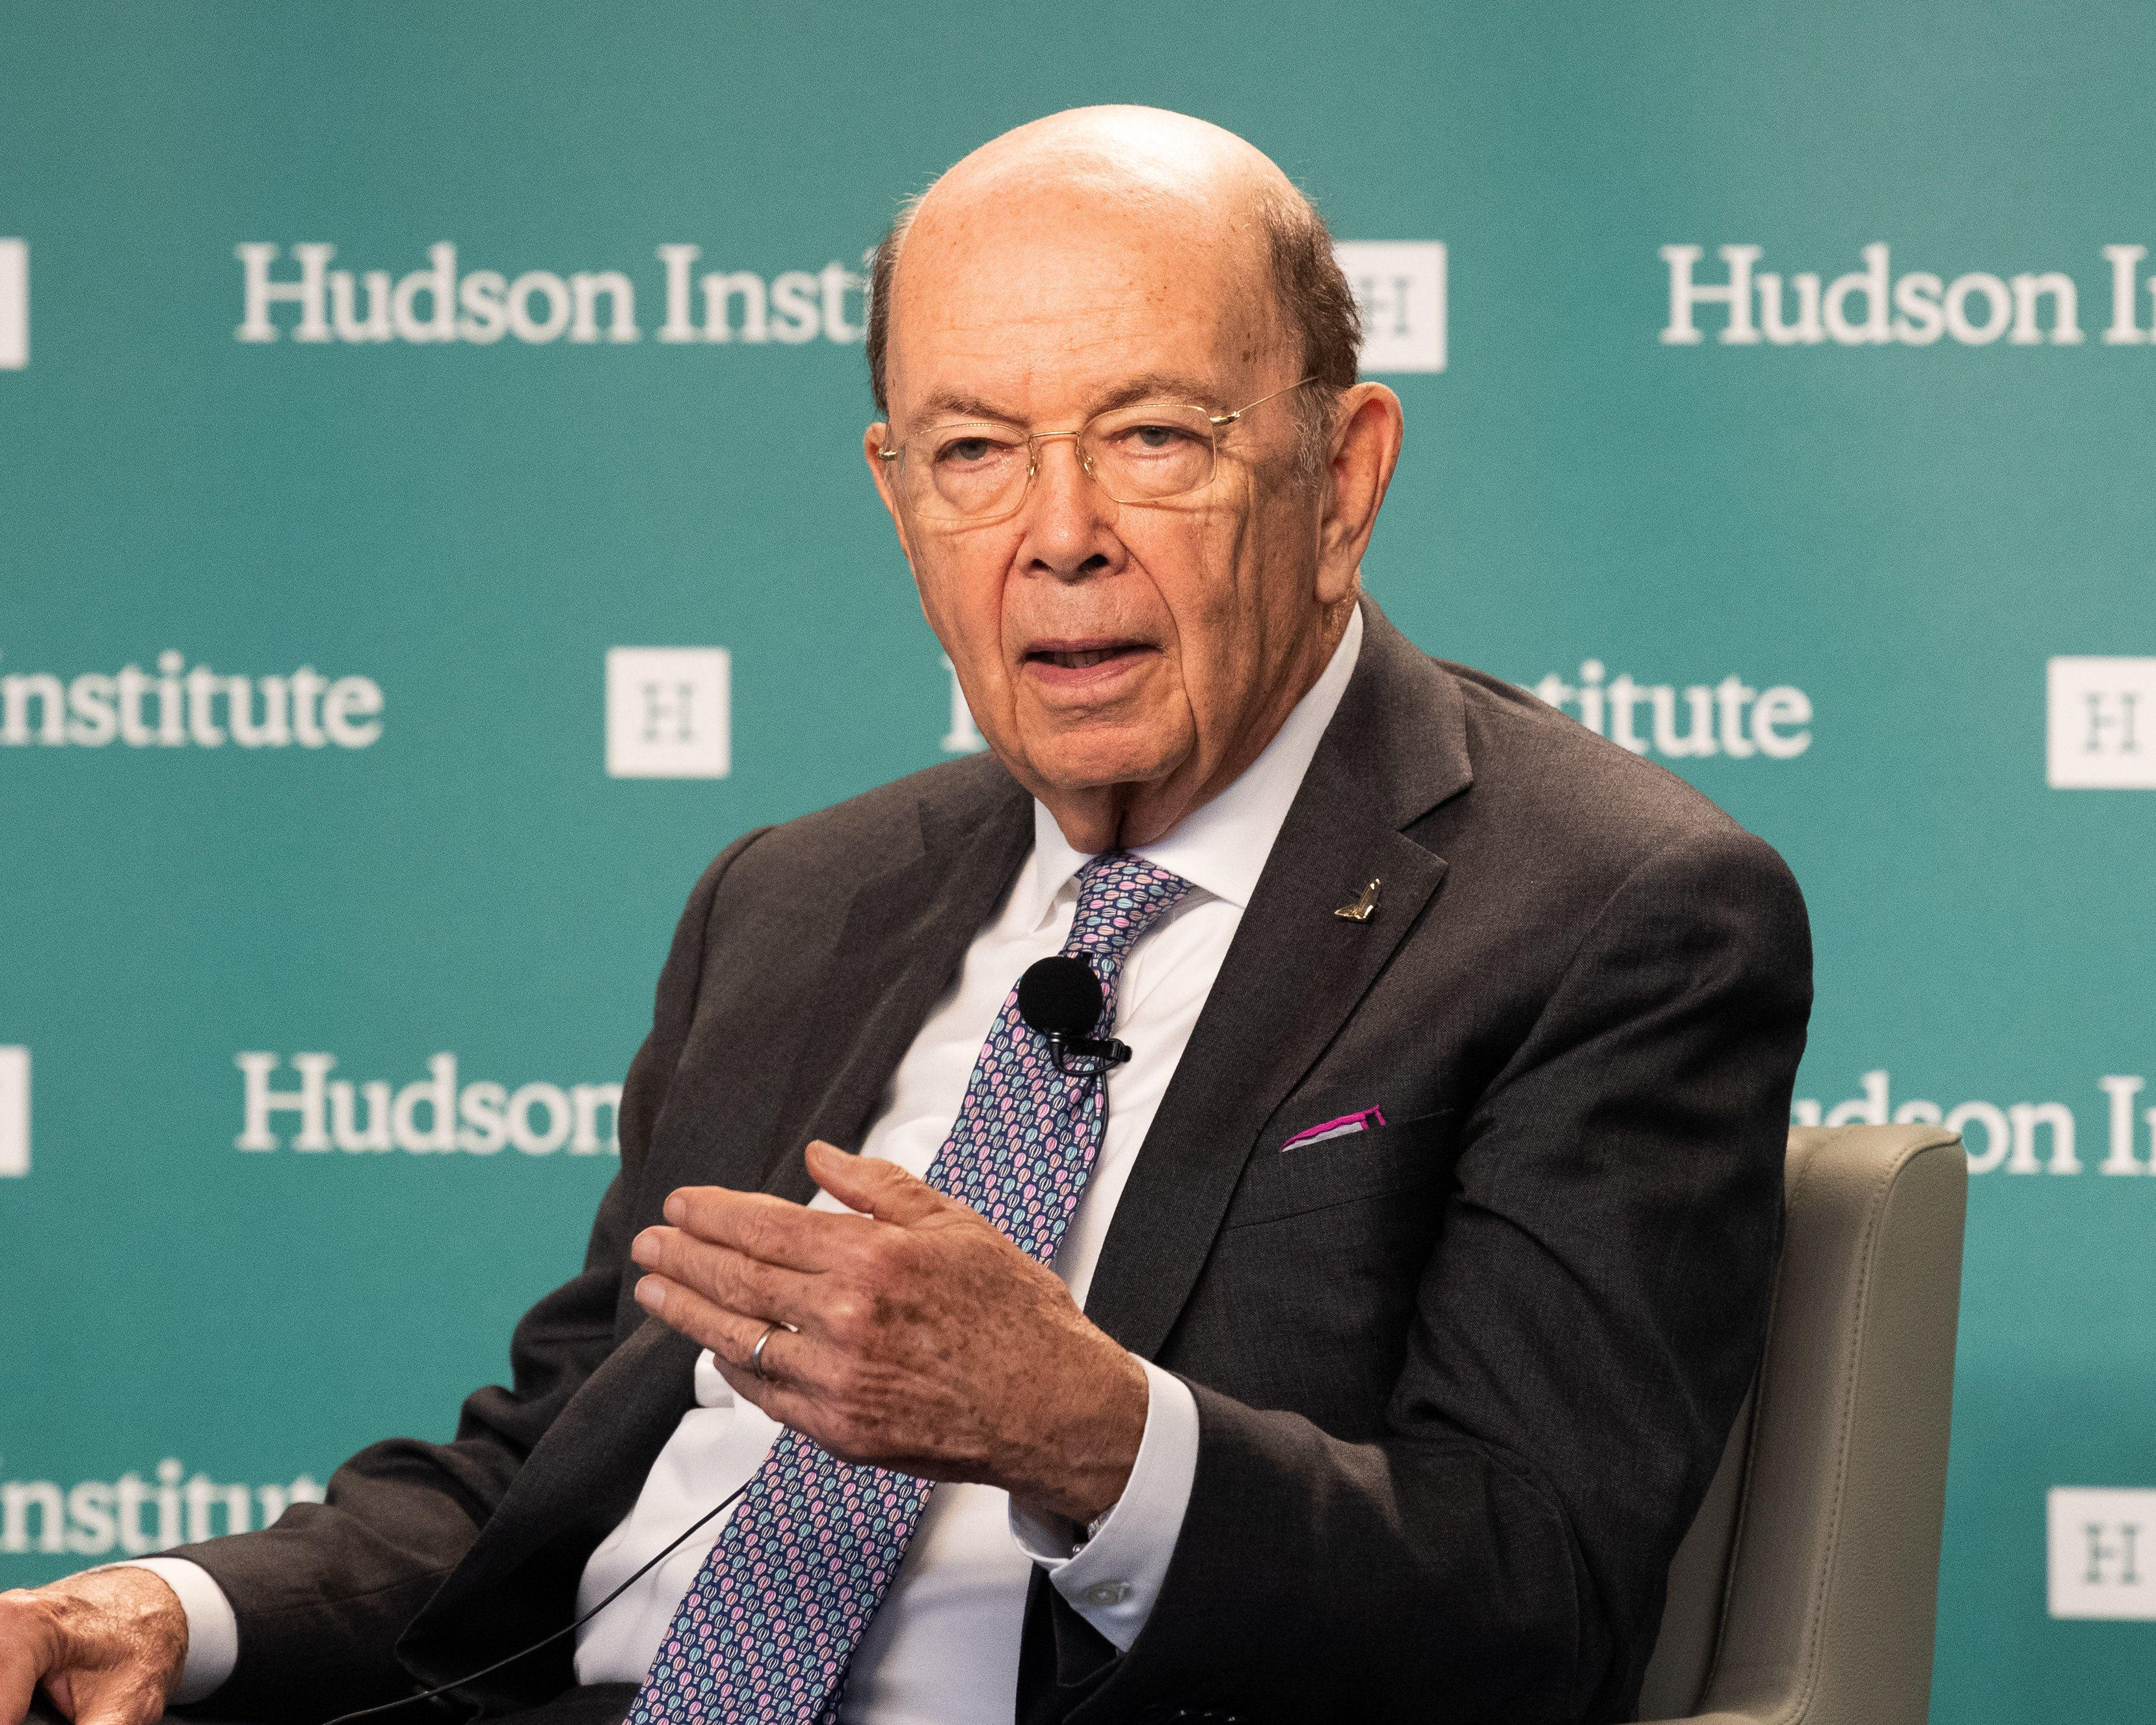 WASHINGTON, DC, UNITED STATES - 2018/07/24: Wilbur Ross, United States Secretary of Commerce, speaking at the Hudson Institute in Washington, DC. (Photo by Michael Brochstein/SOPA Images/LightRocket via Getty Images)